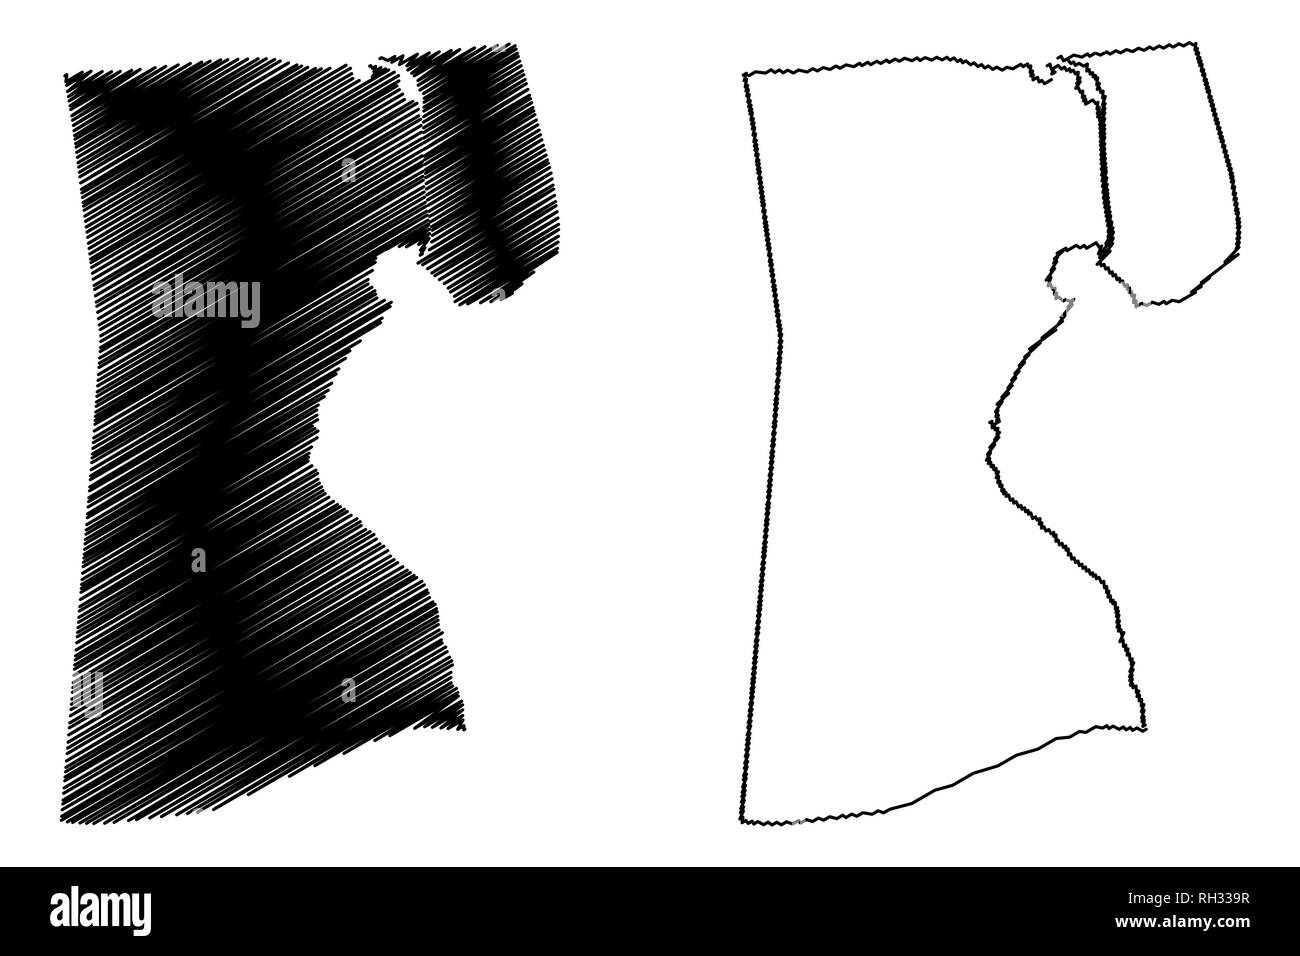 Suez Governorate (Governorates of Egypt, Arab Republic of Egypt) map vector illustration, scribble sketch Suez map - Stock Image